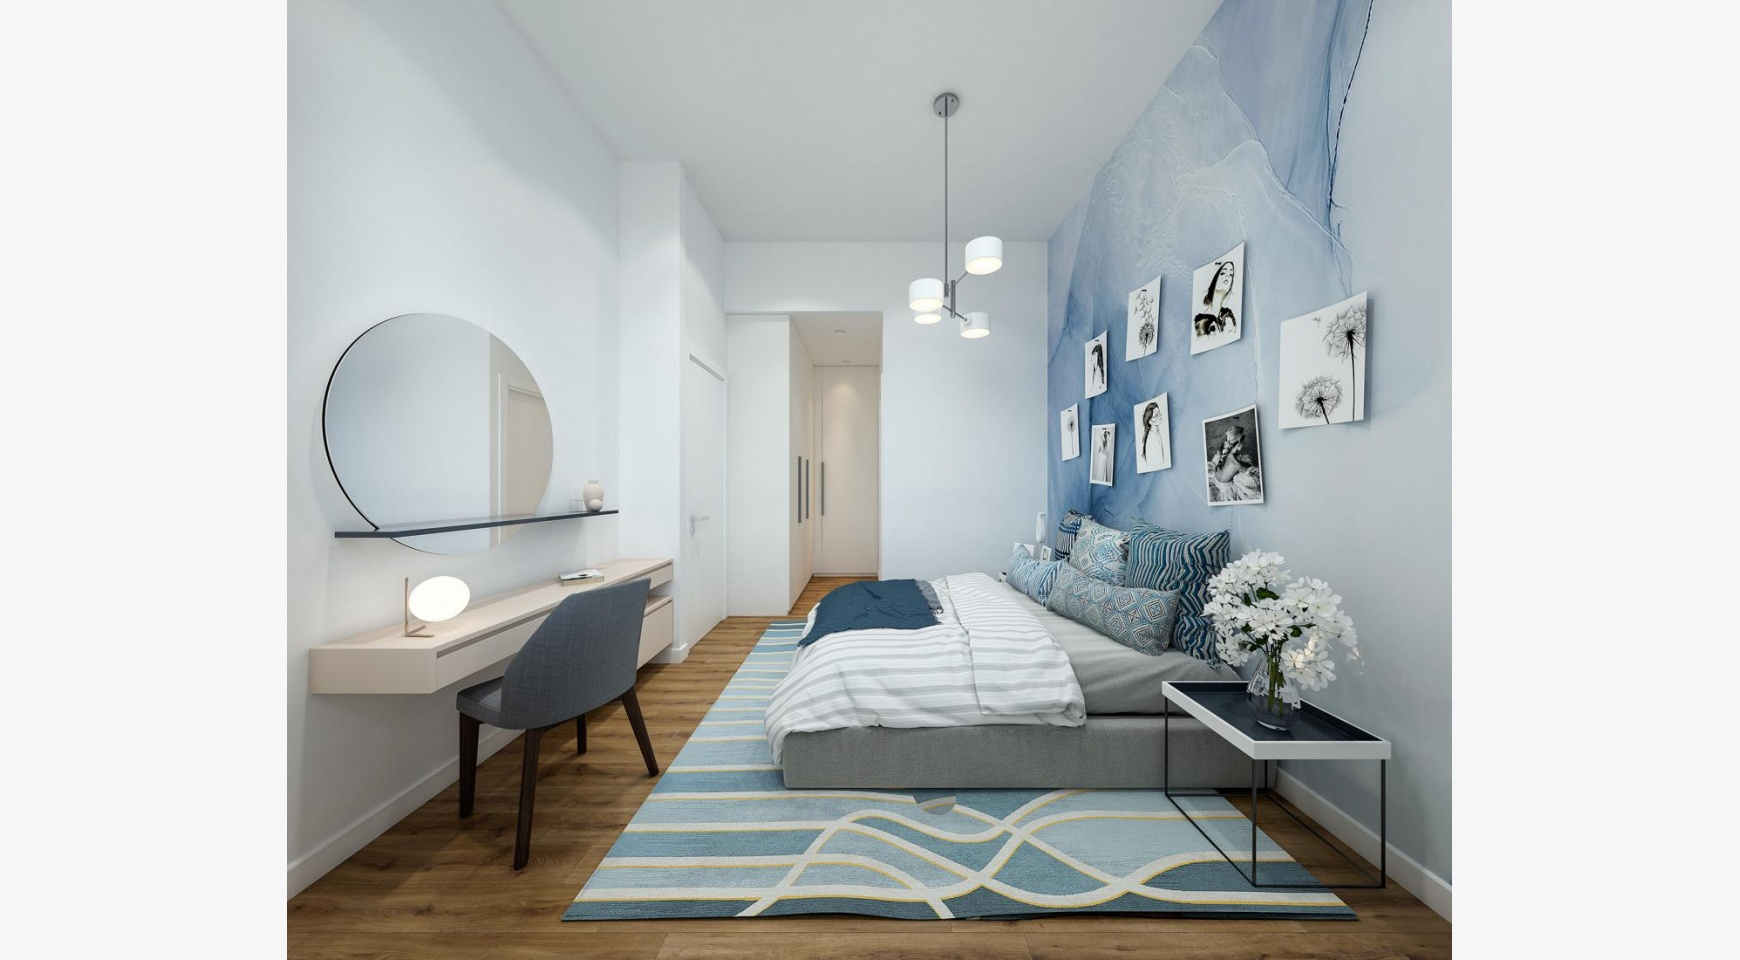 Urban City Residences, Block B. New Spacious 2 Bedroom Apartment 202 in the City Centre - 11